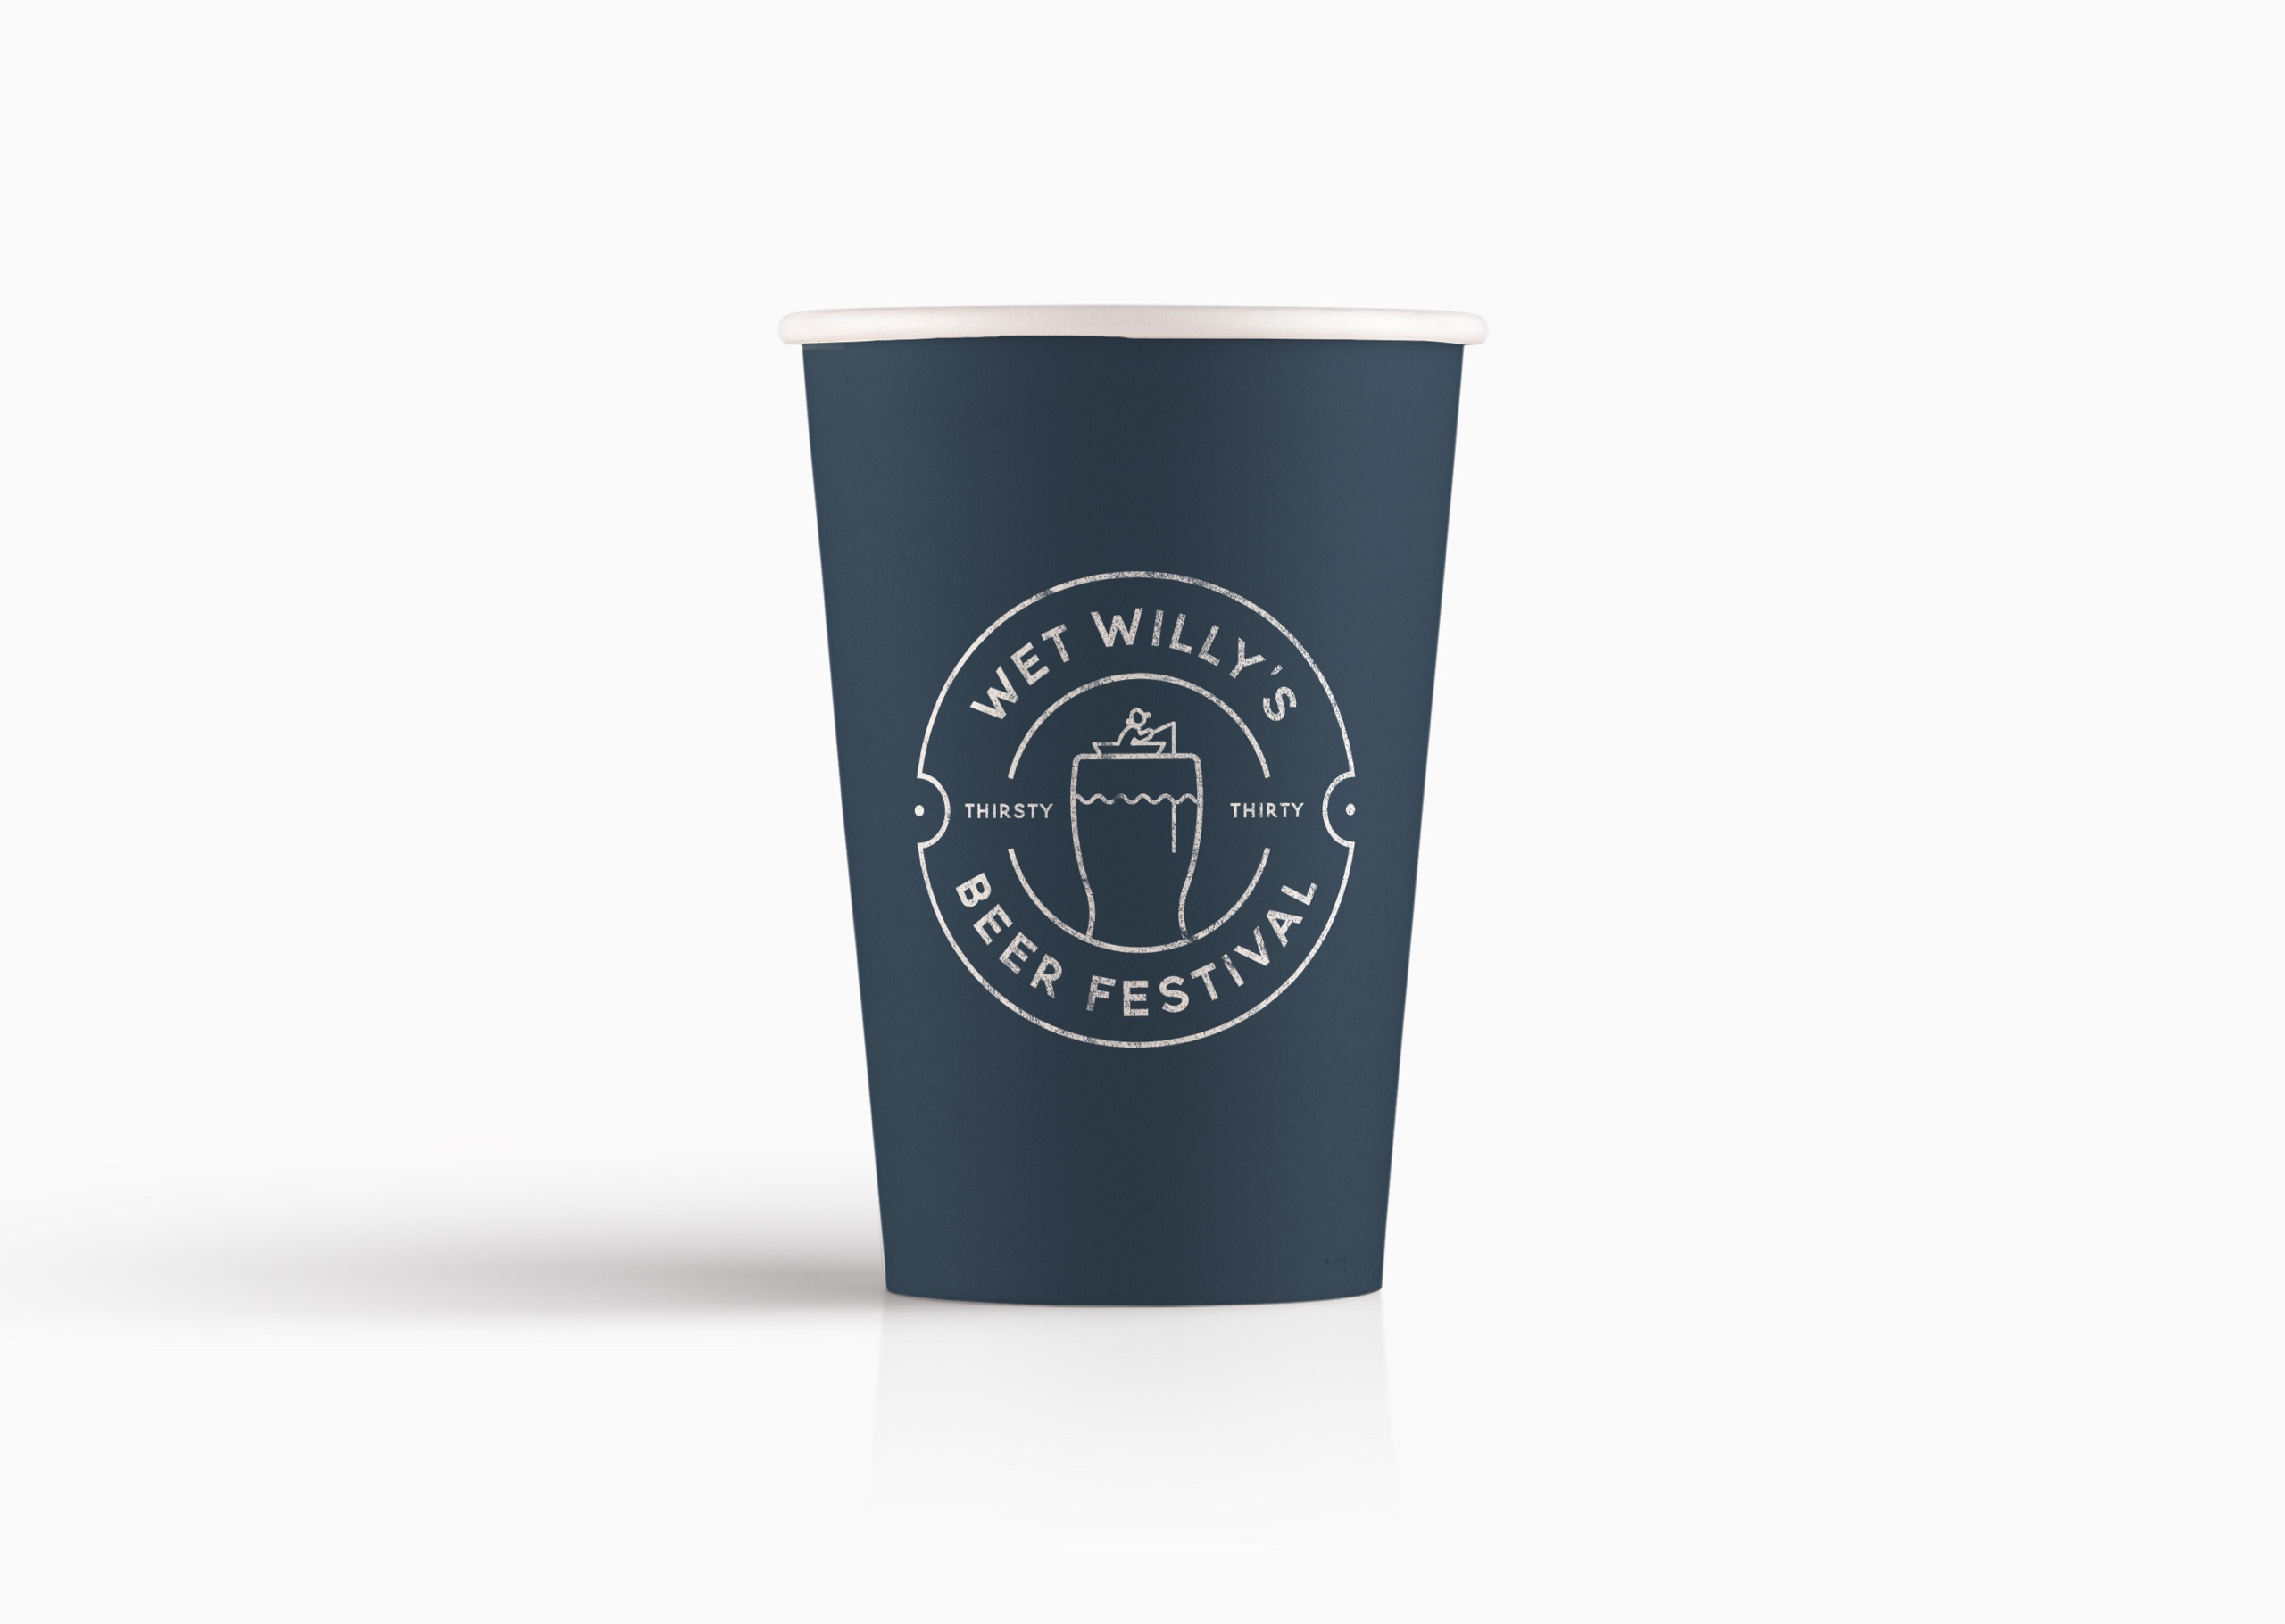 Paper cup and logo design for Wet Willy's Beer Festival